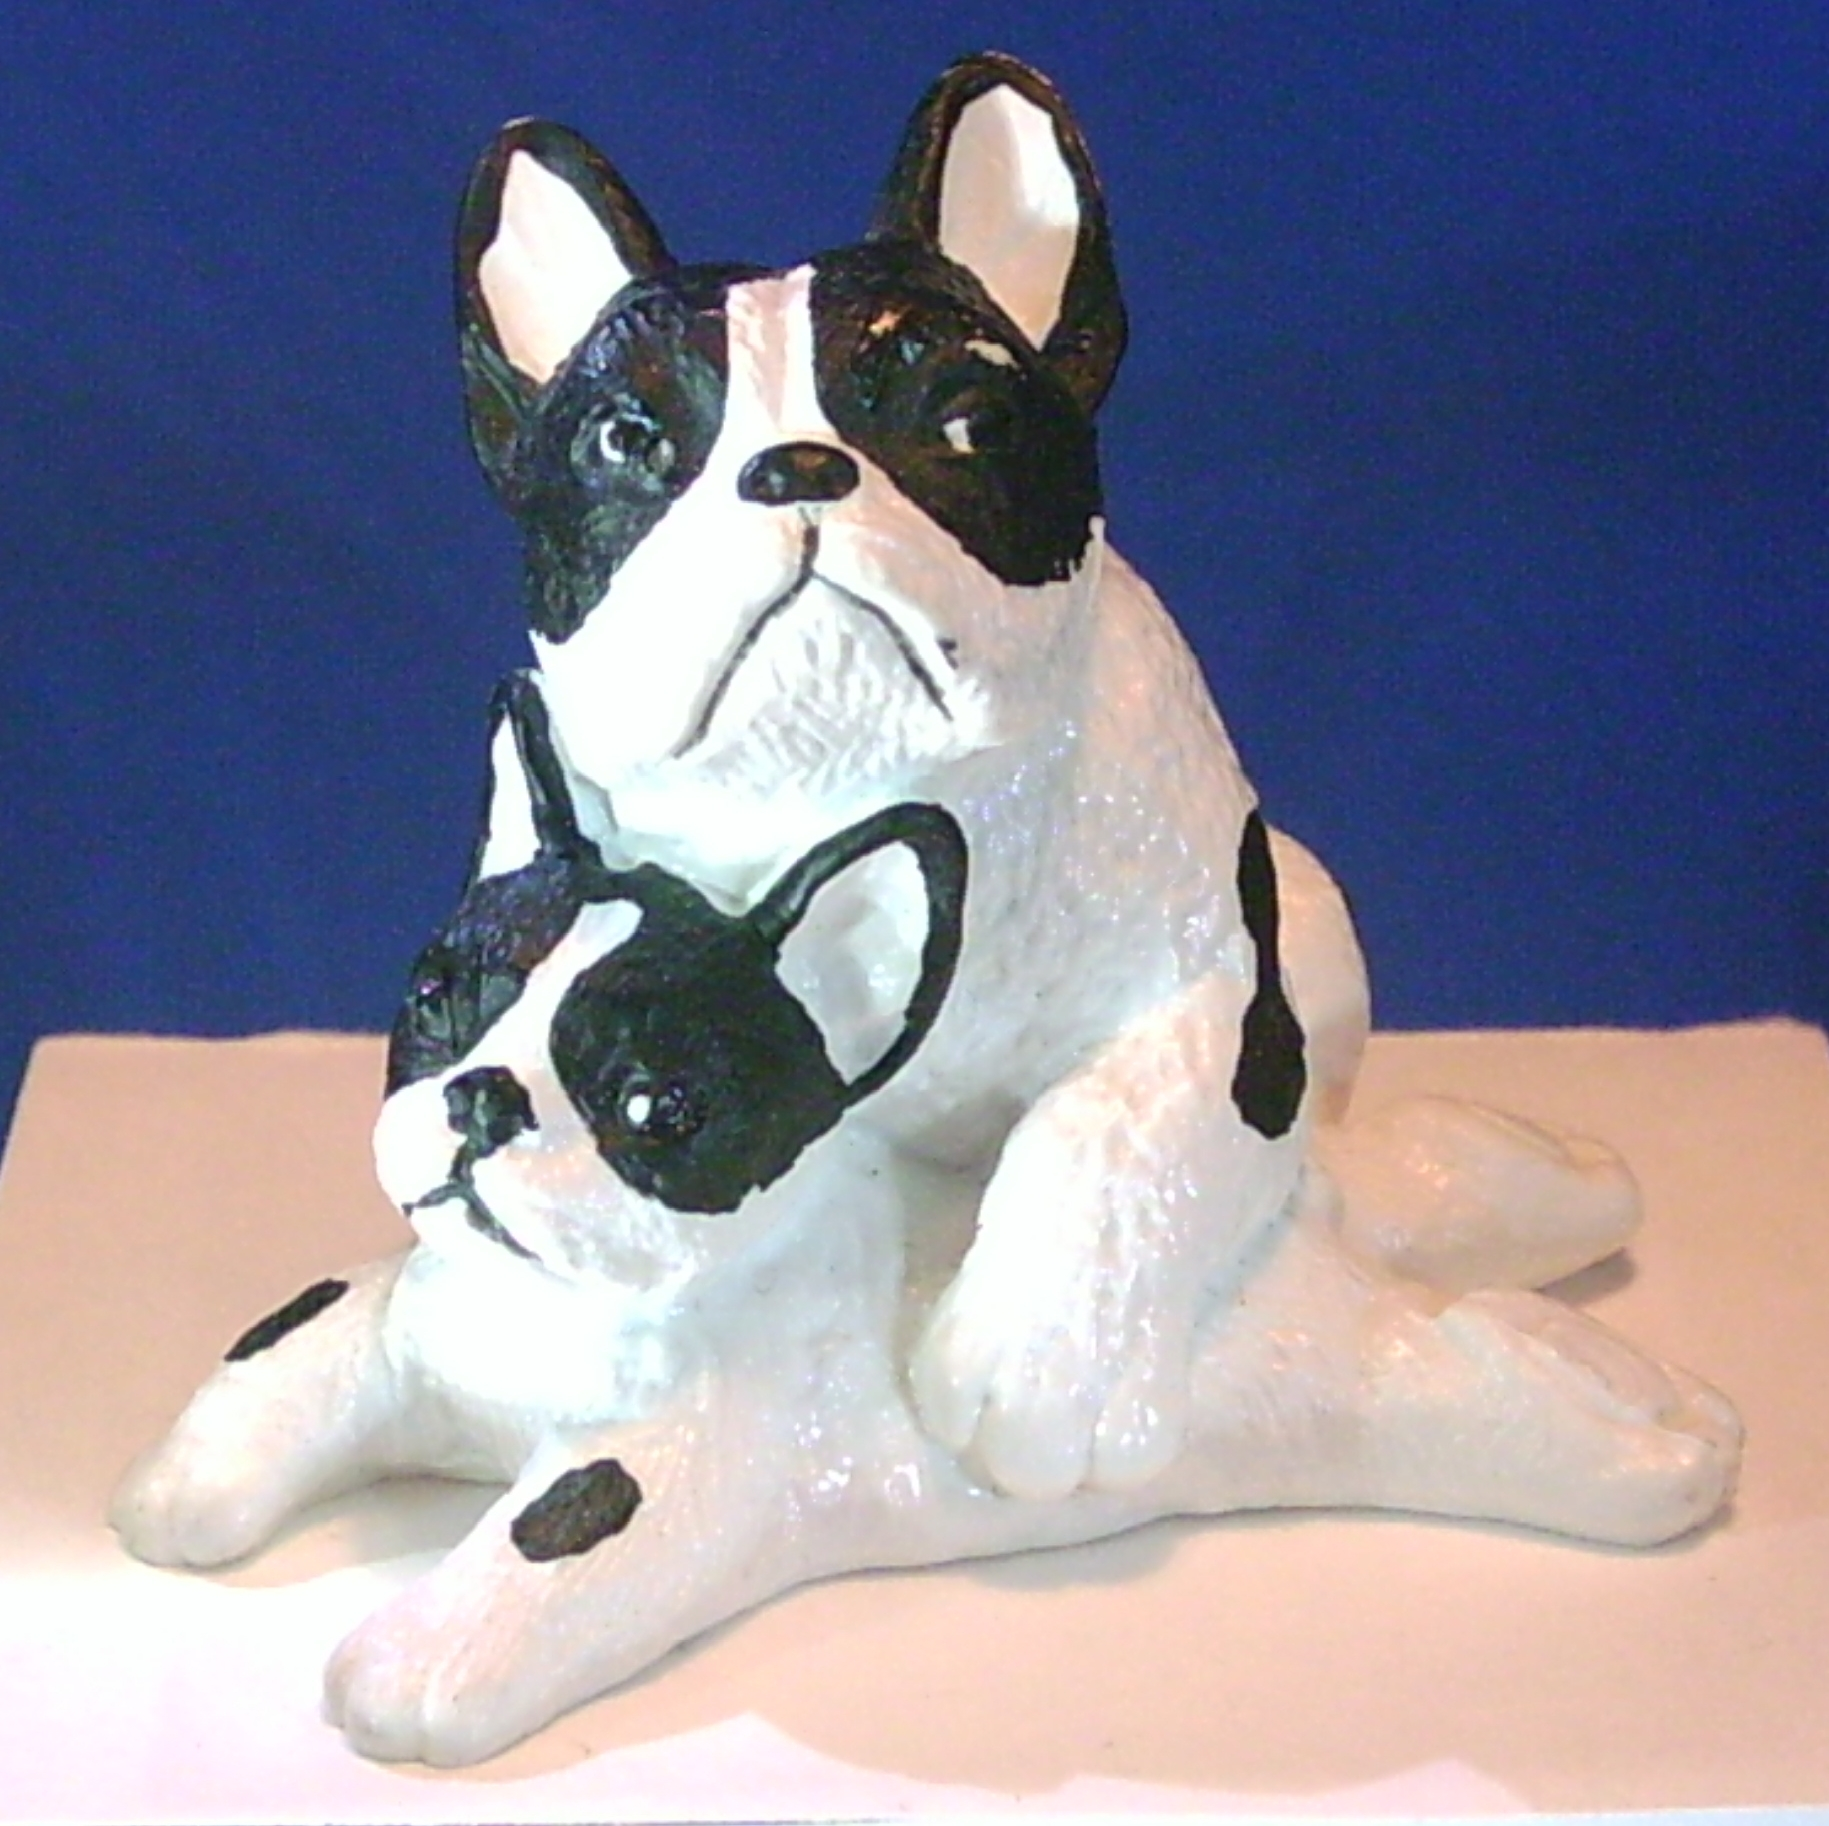 Two French Bulldogs Vinyl Figure